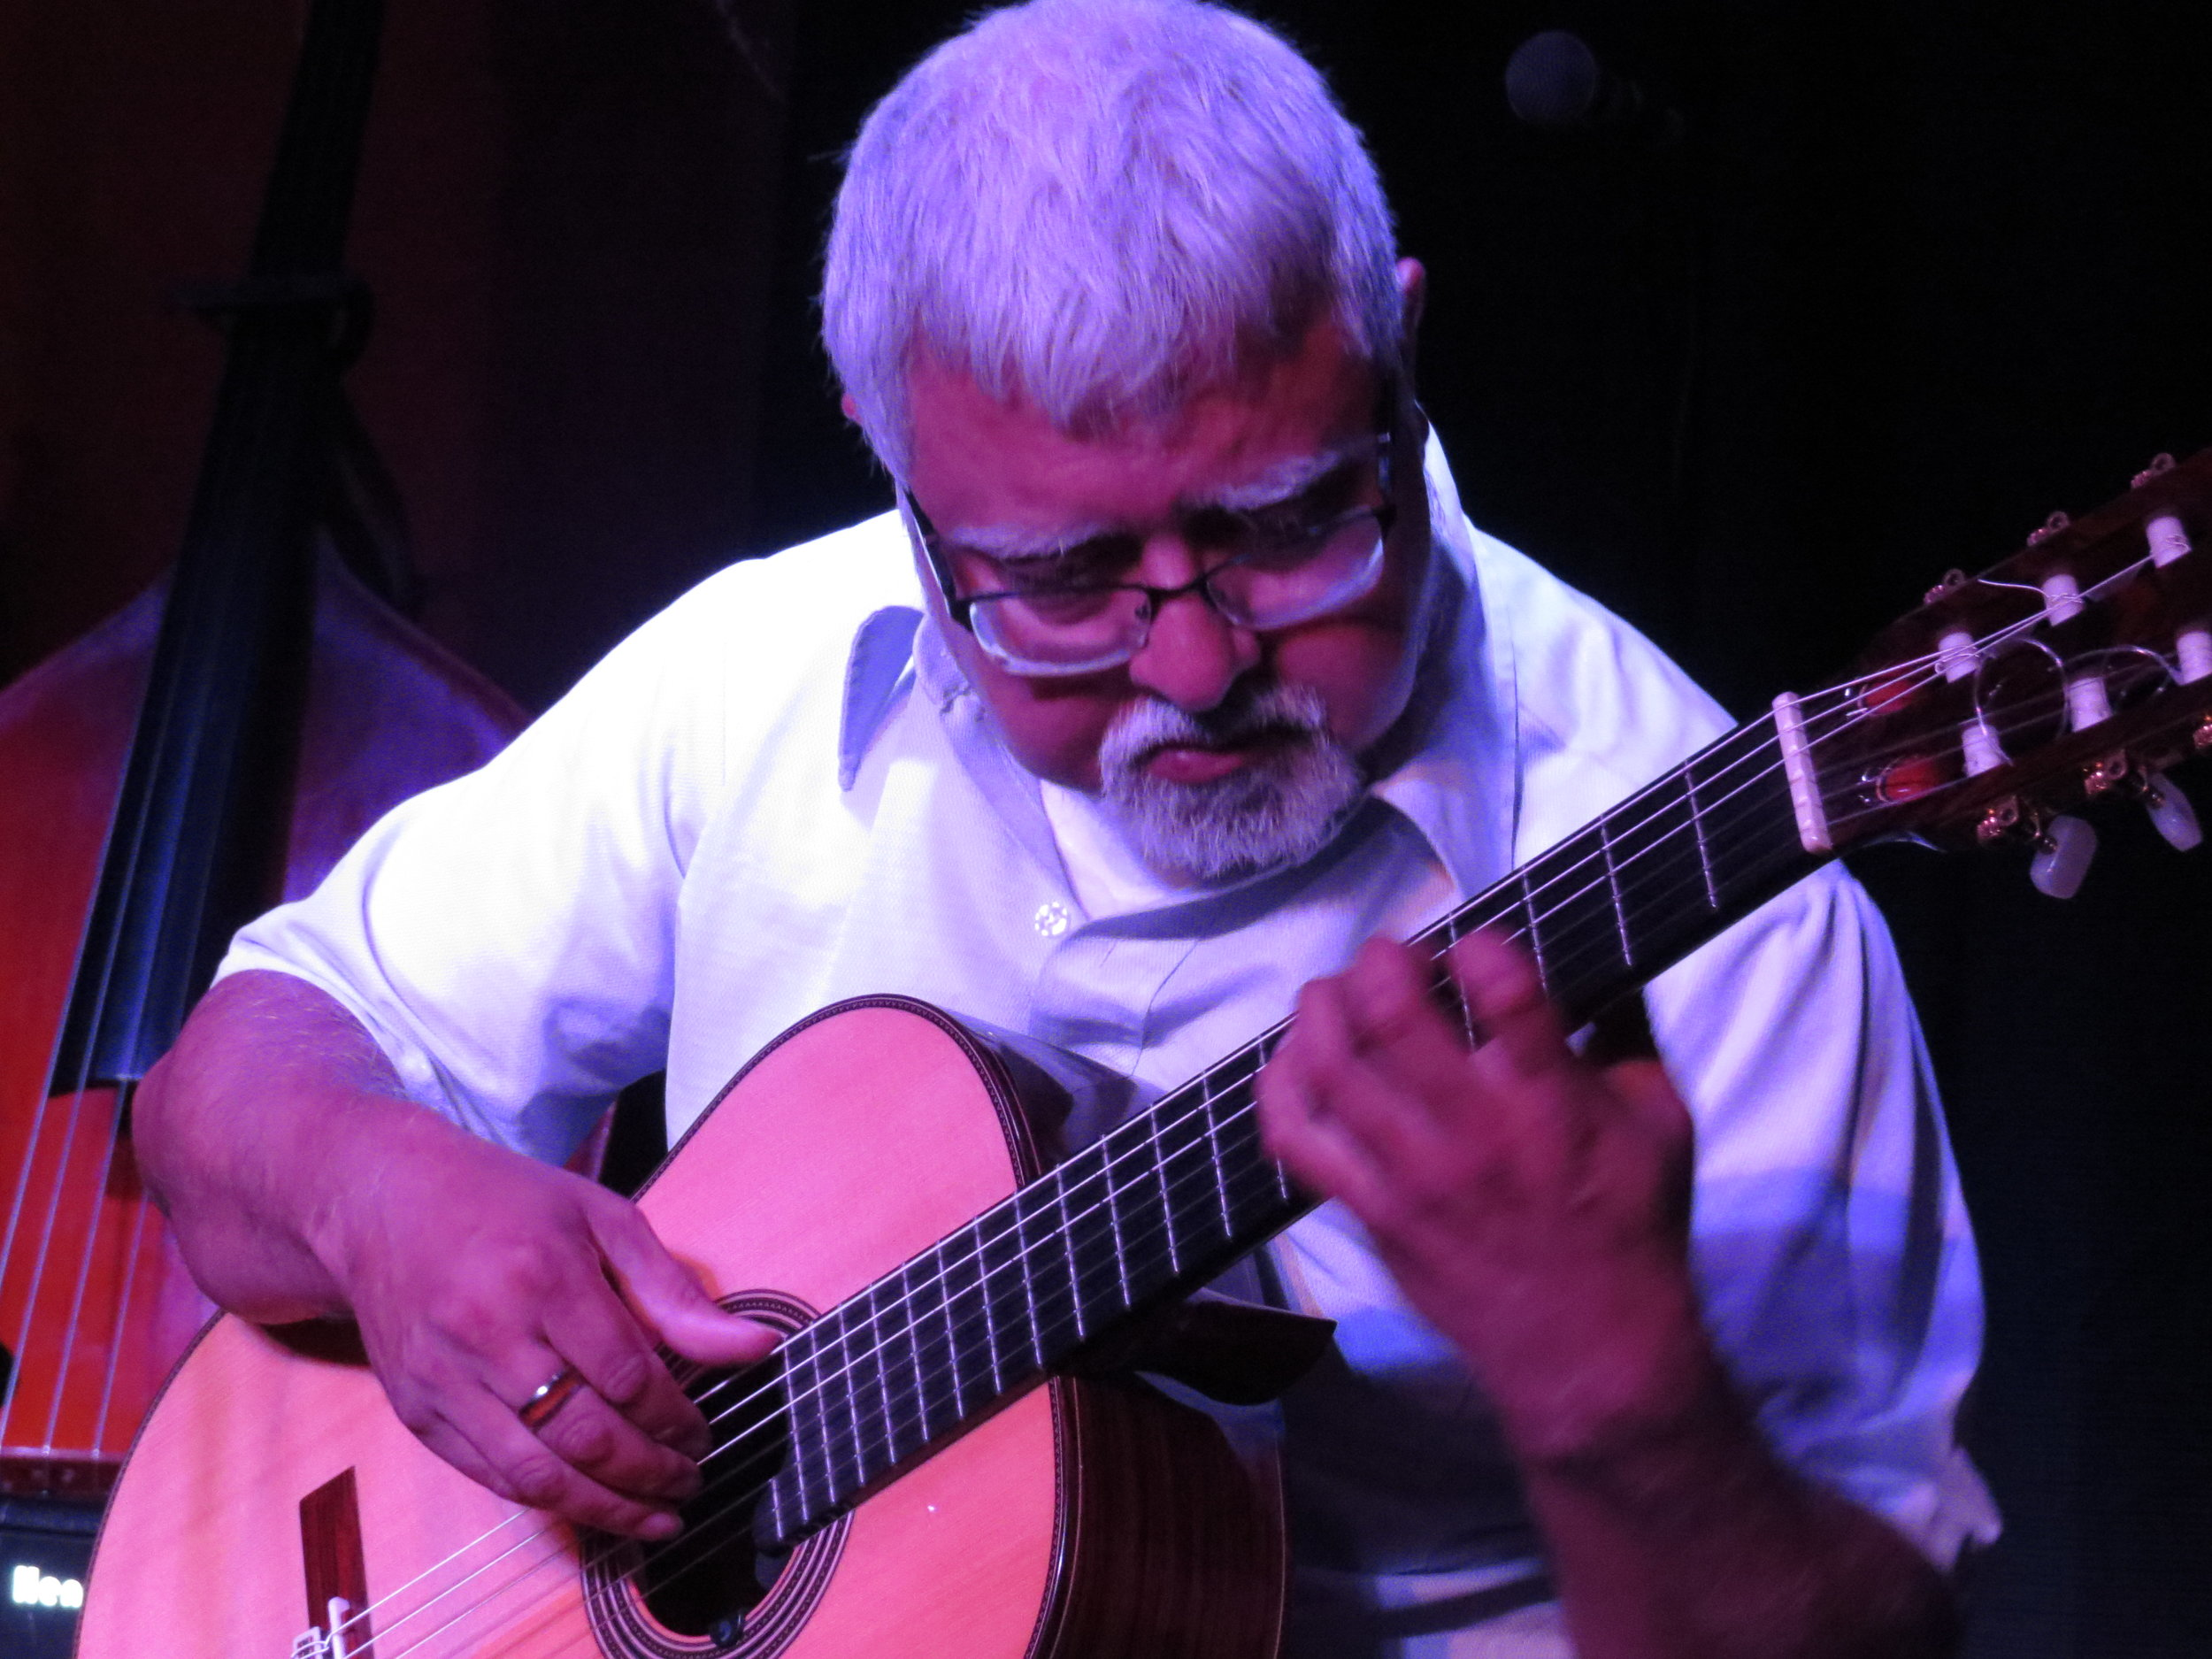 Fareed Haque showed why he's considered one of the finest guitar player in the world with his own set and some collaborations with the Prowlers. Bluegrass AND Jazz!